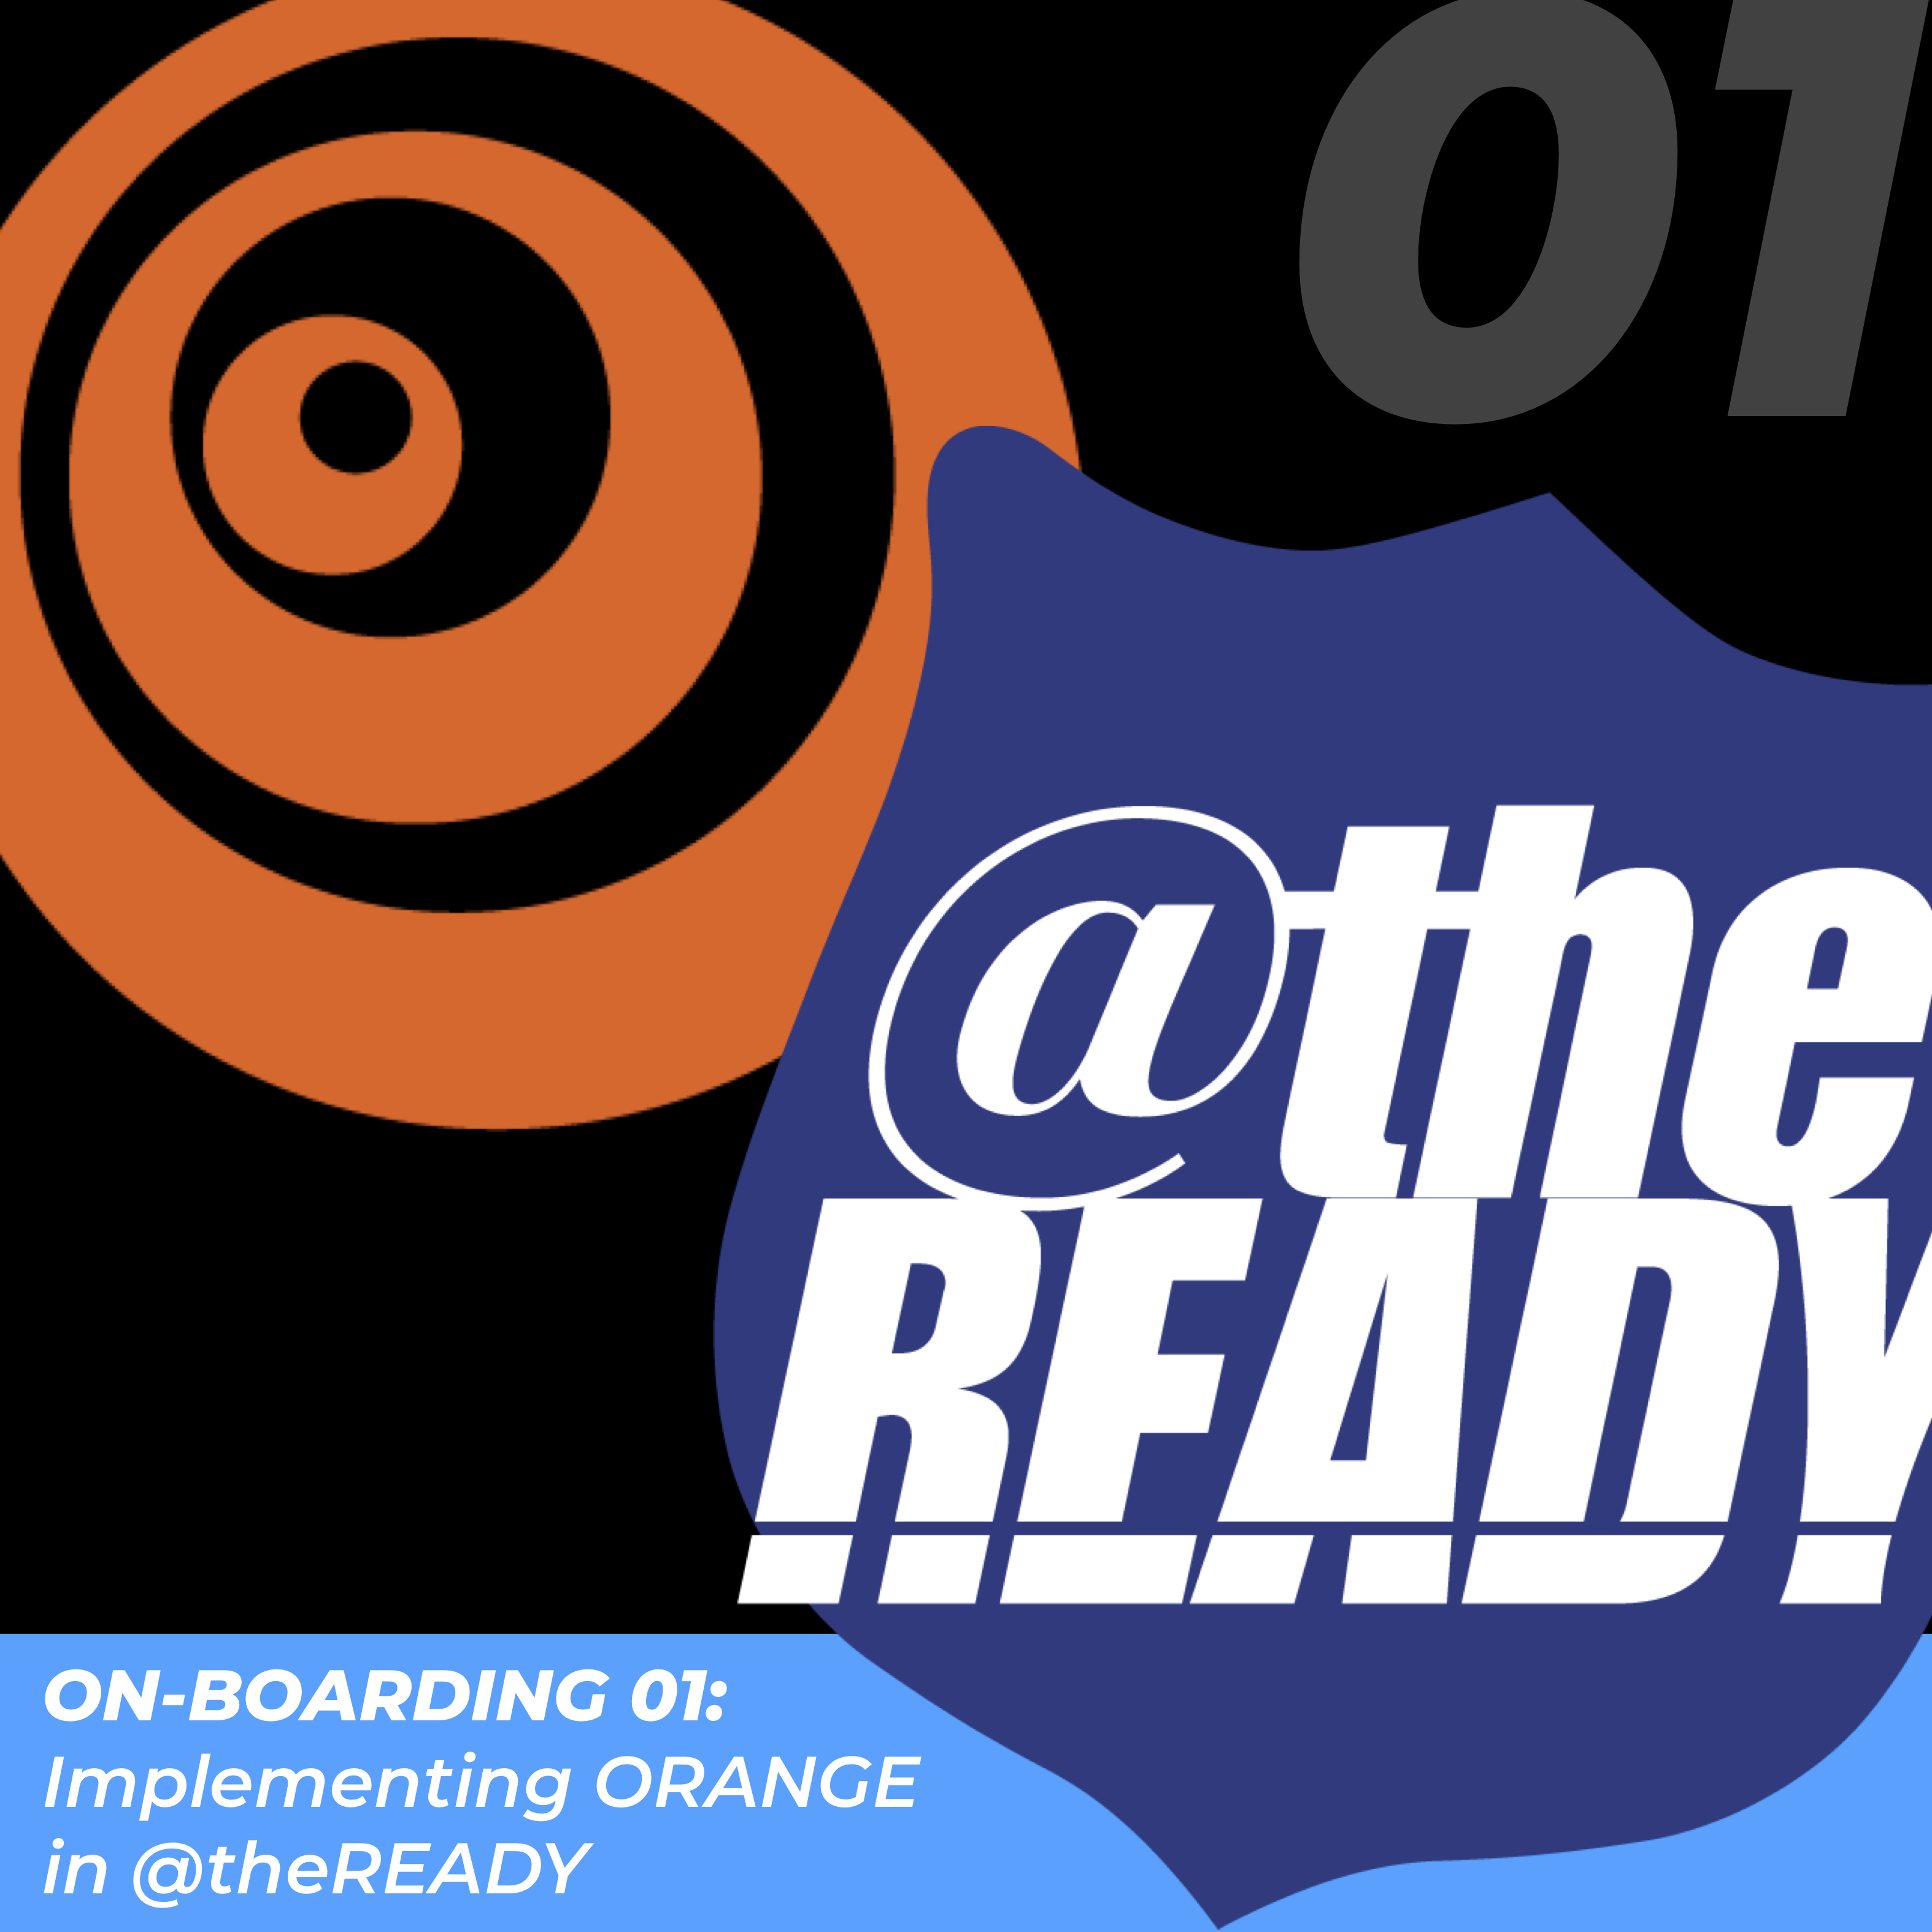 Click here for On-boarding 01: Implementing Orange in @theReady.